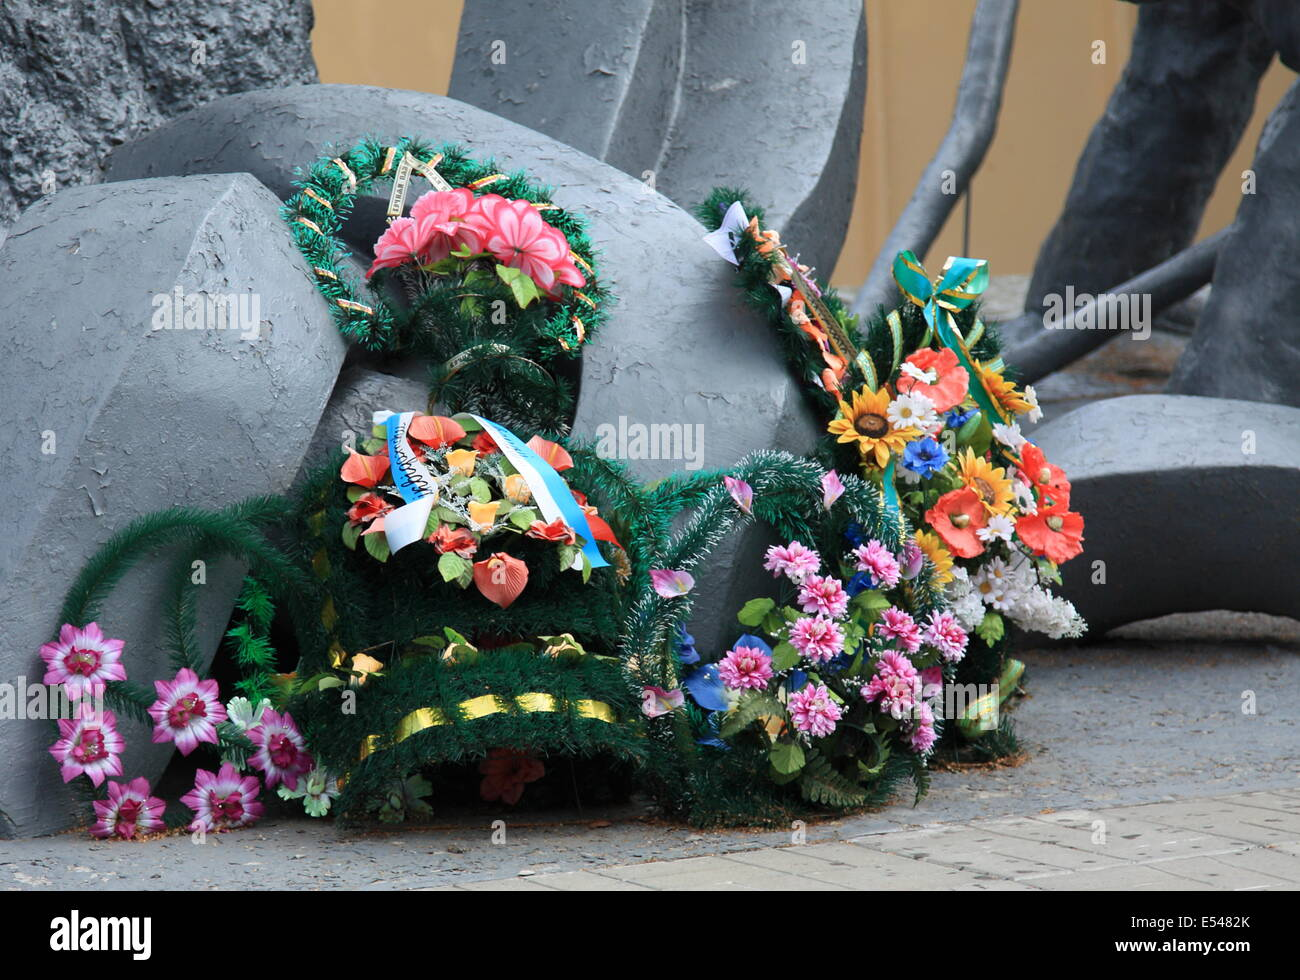 Flowers placed at the memorial to the firefighters who were killed after responding to the Chernobyl disaster. - Stock Image